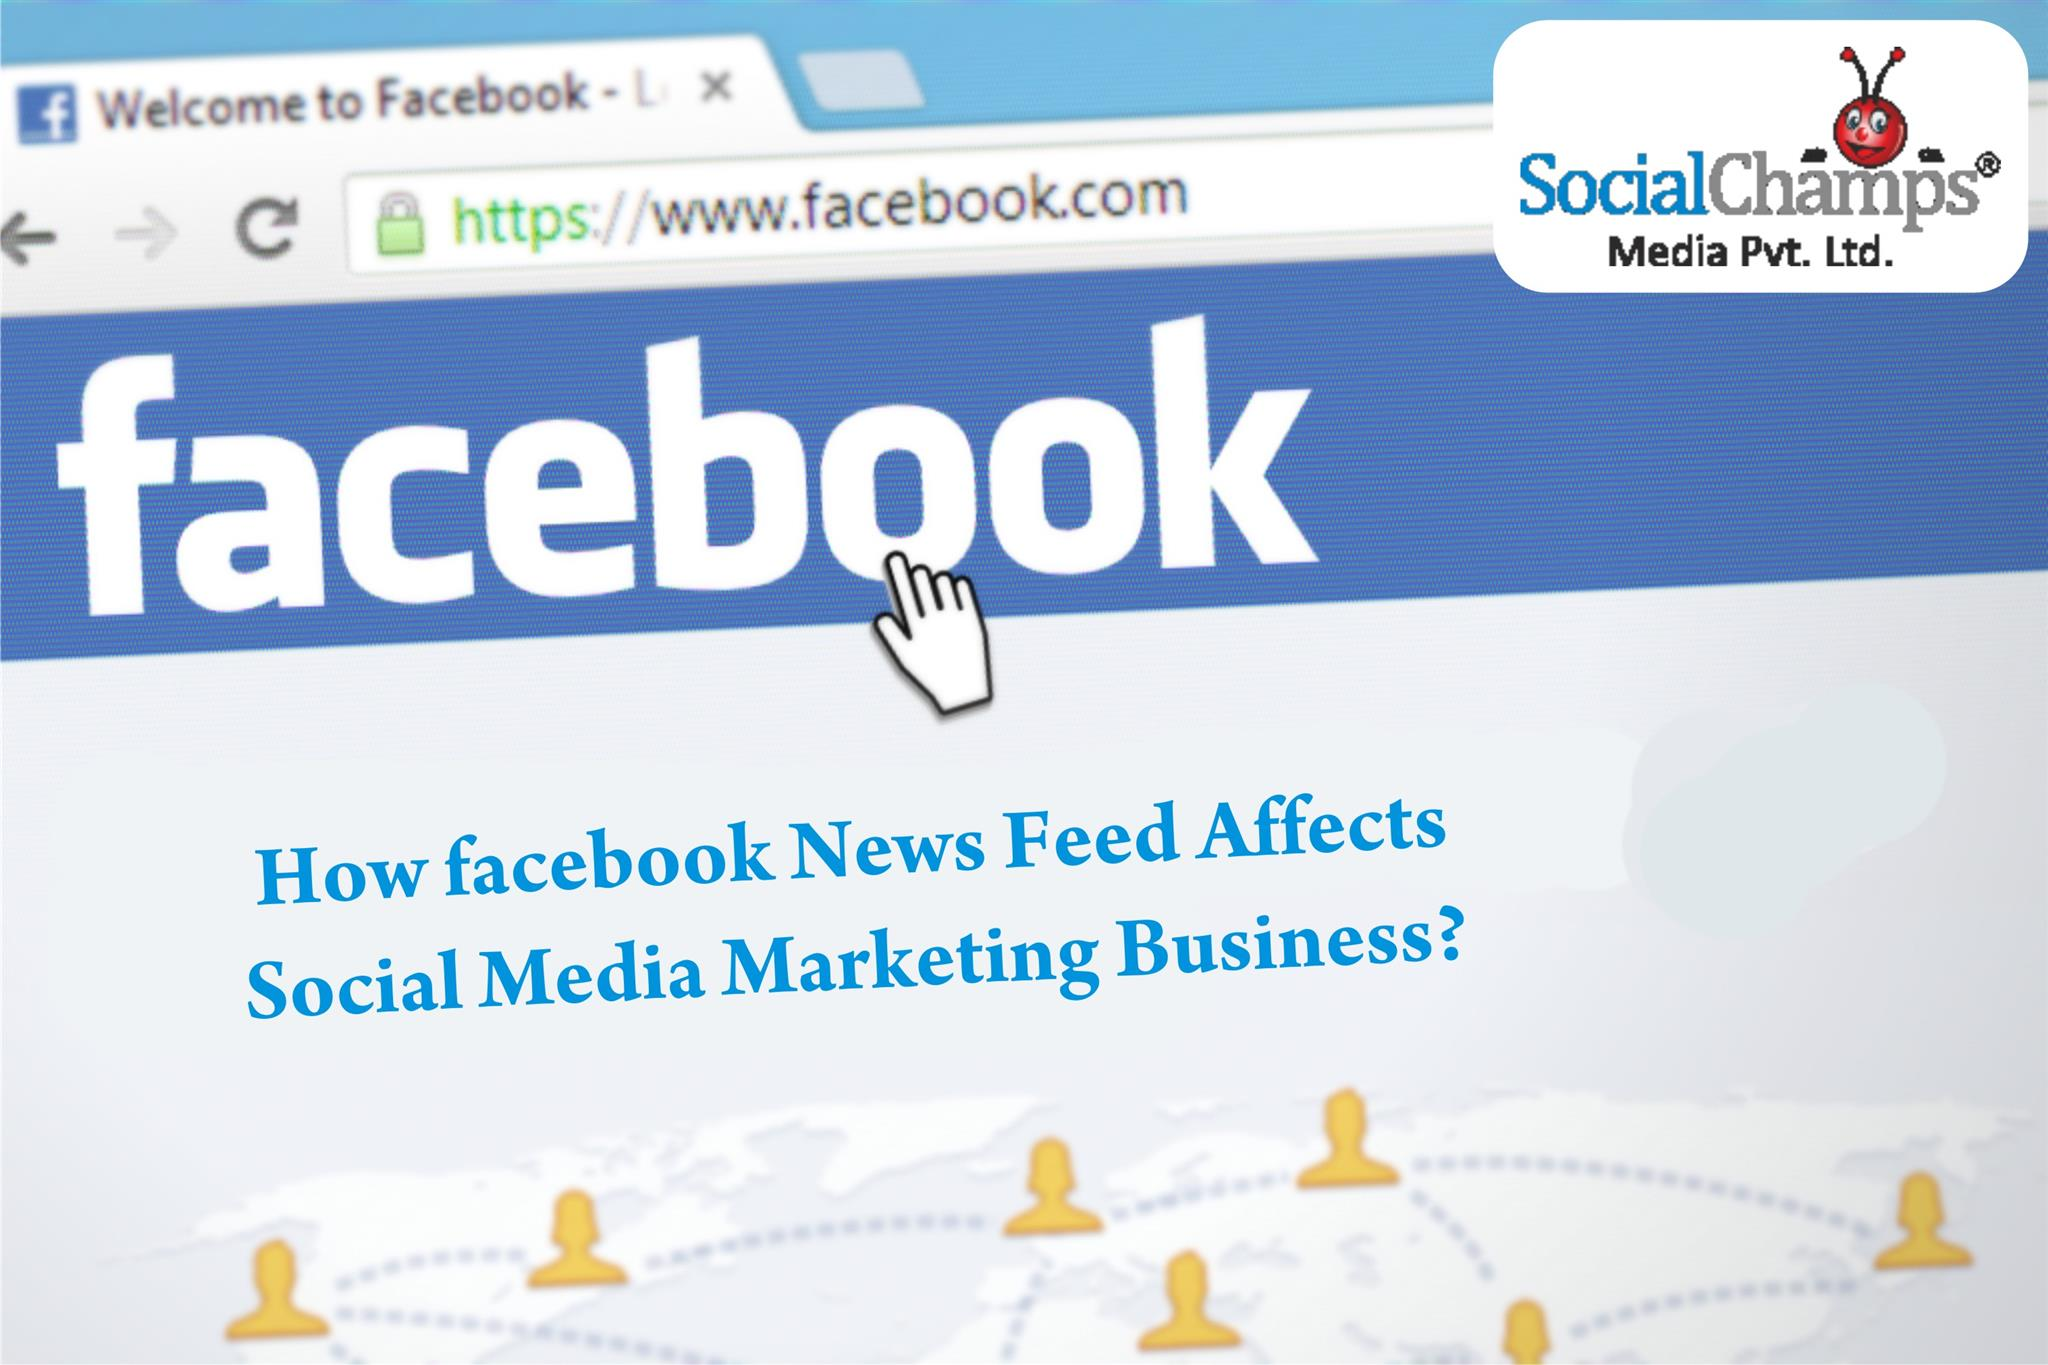 Facebook news feed algorithm changes